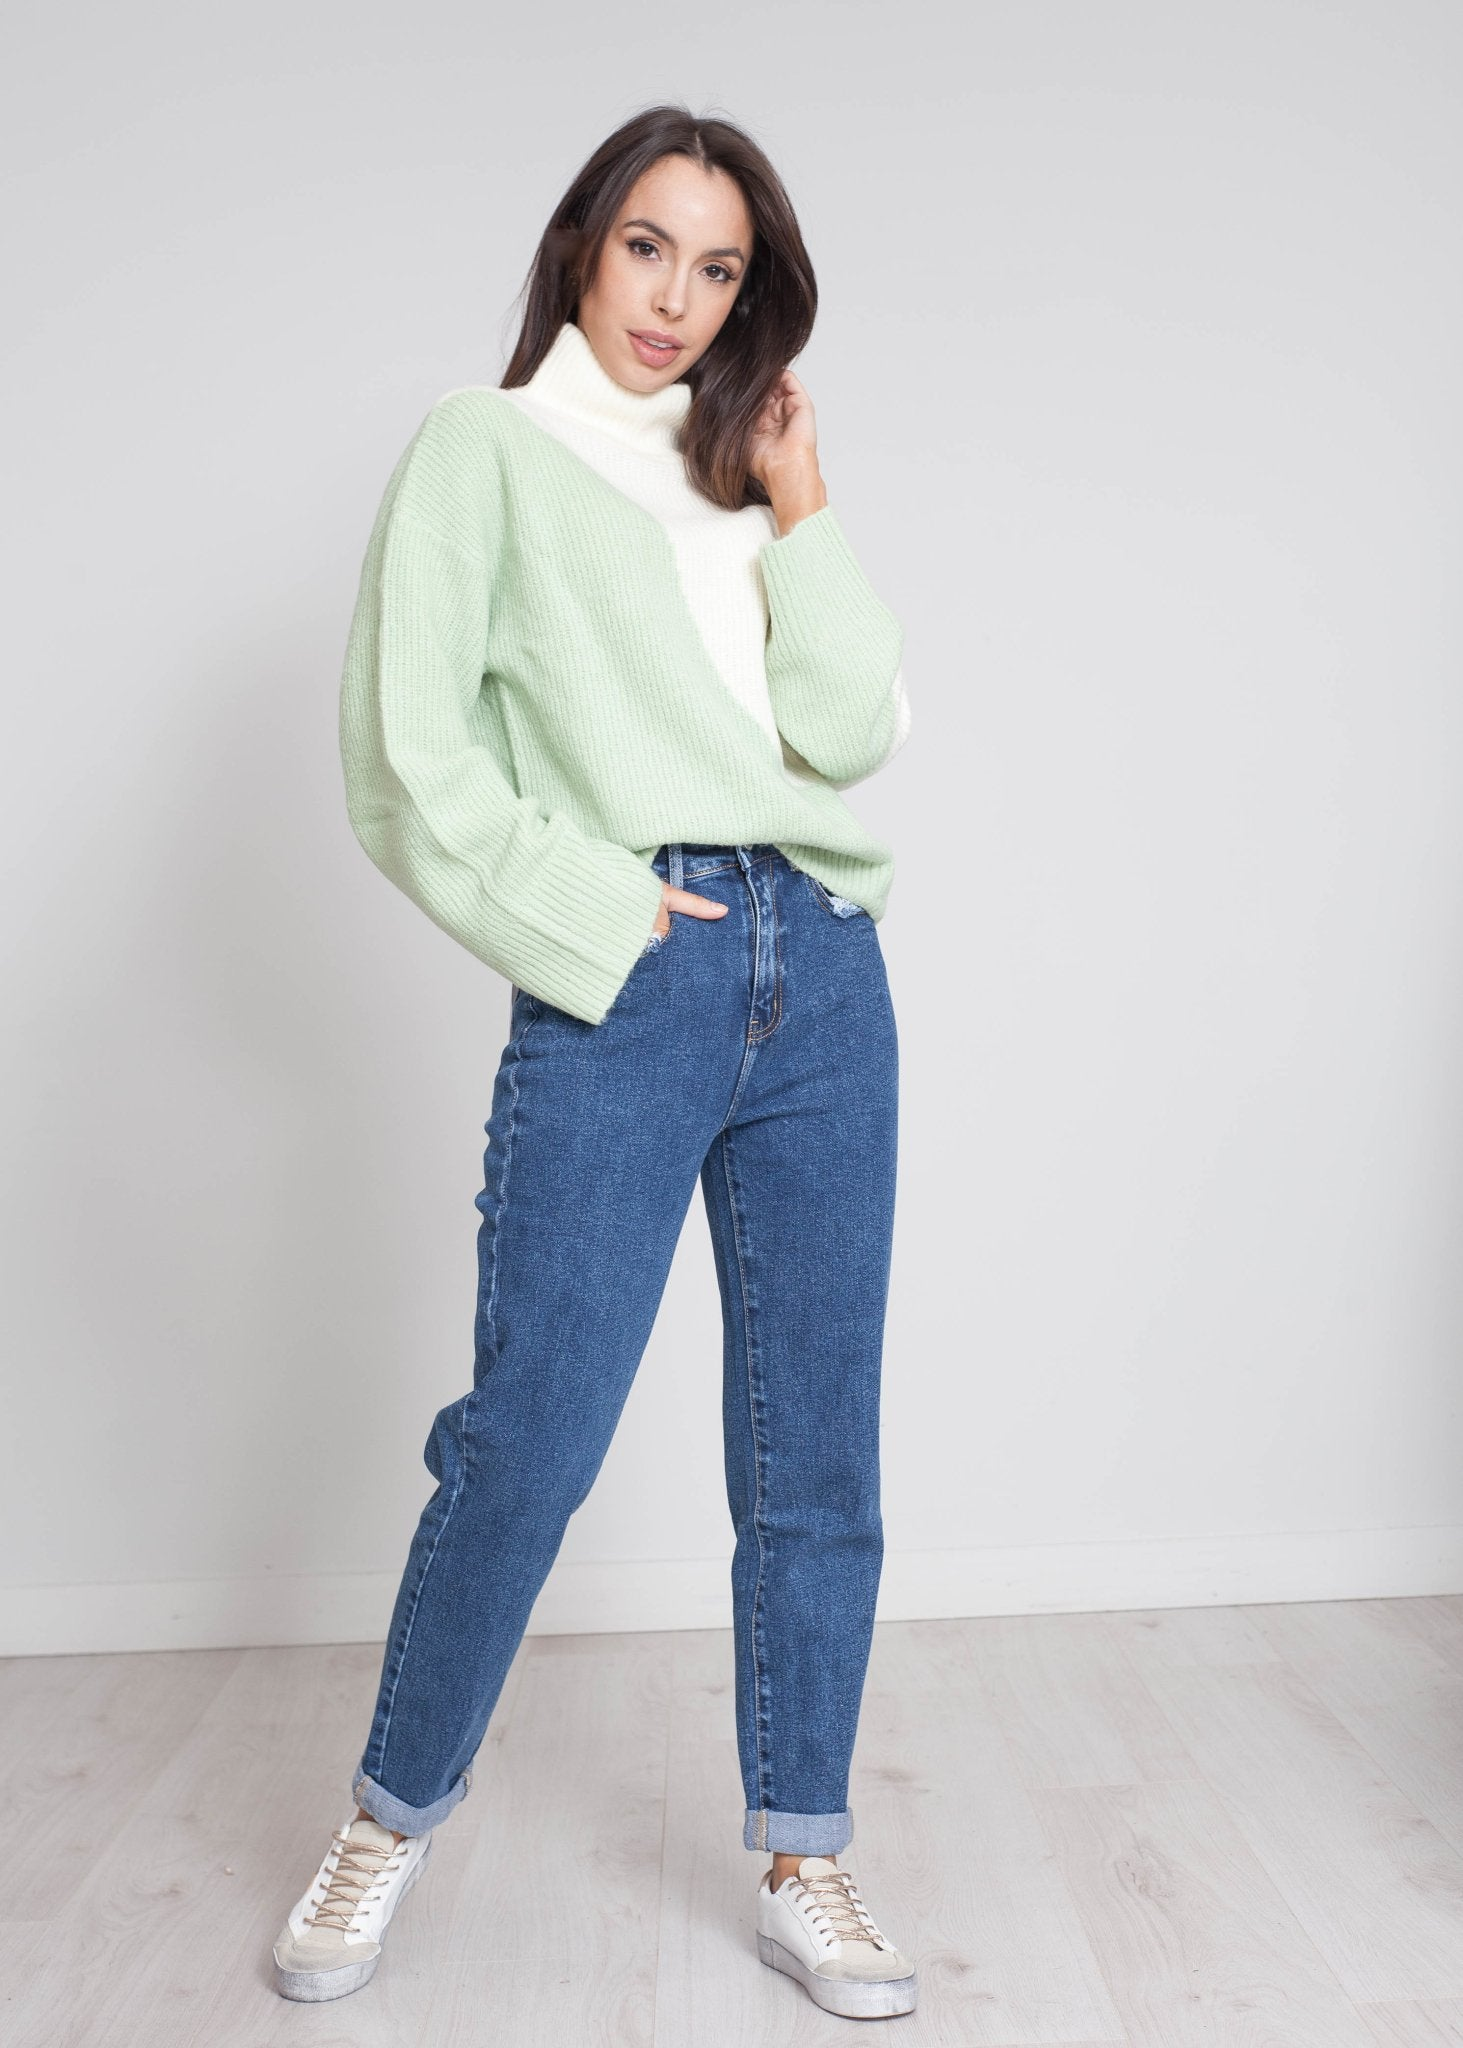 Freya Contrast Polo Neck In Green Mix - The Walk in Wardrobe